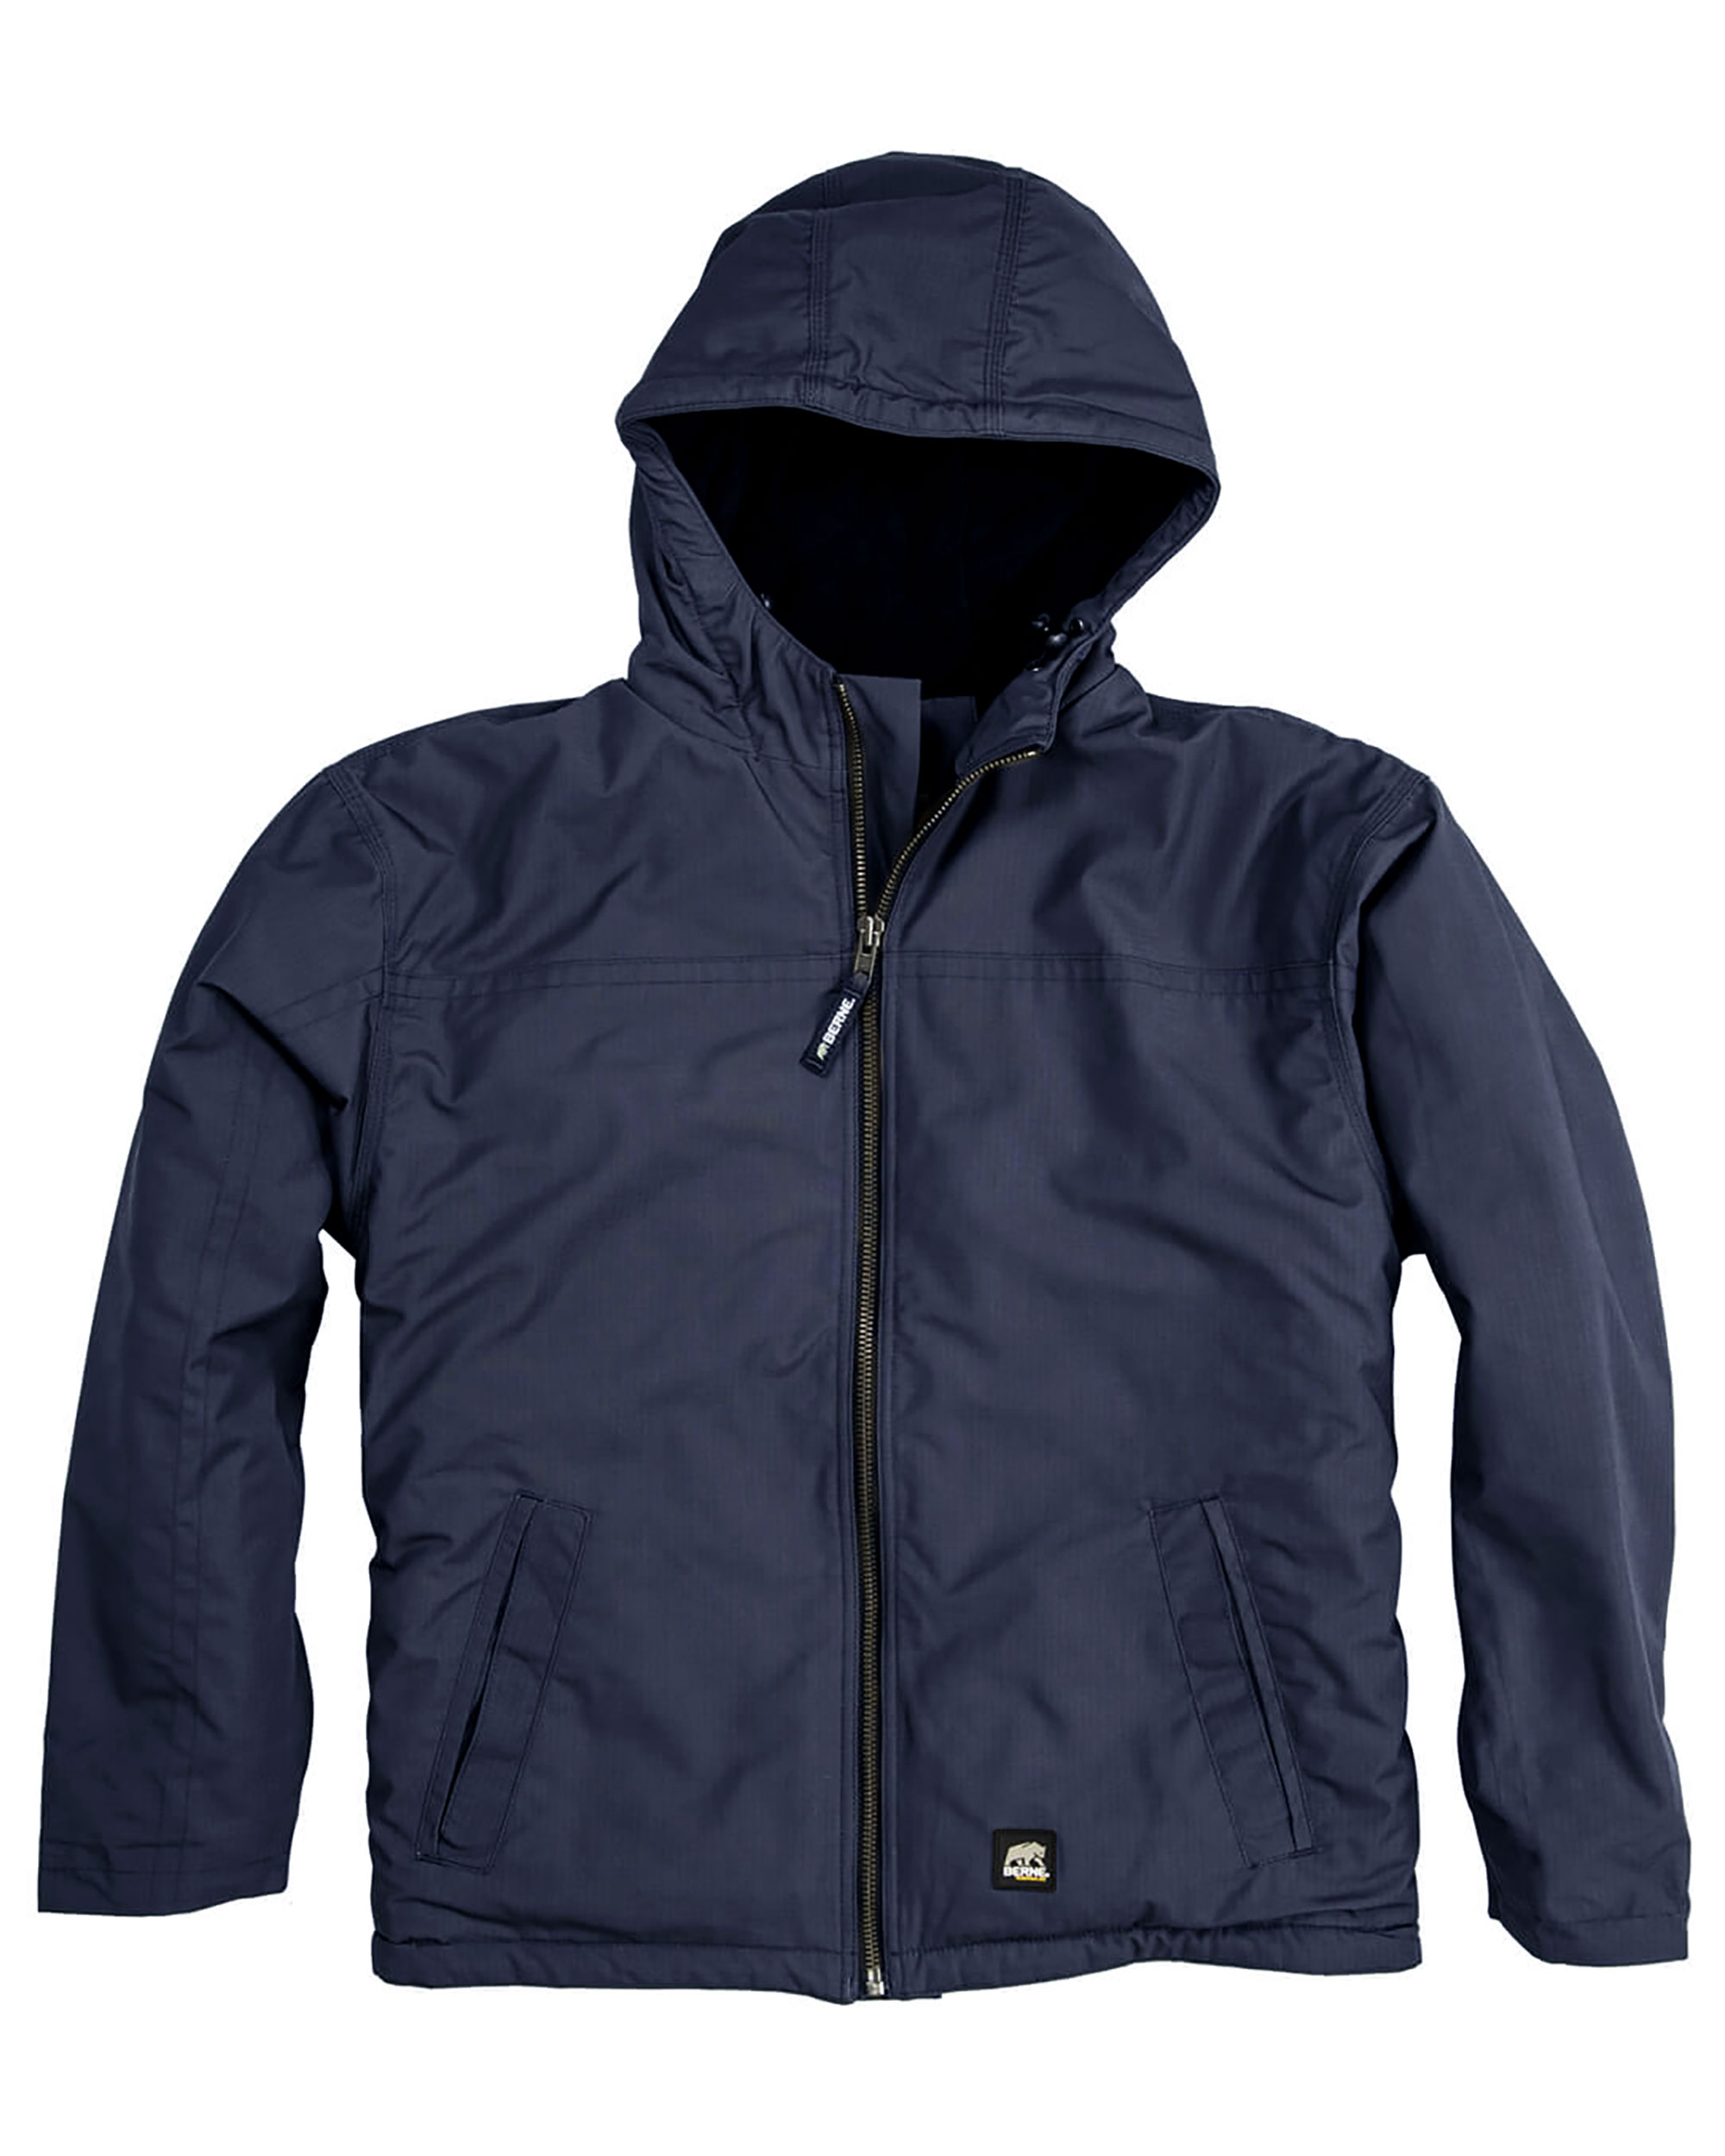 Berne Workwear HJ19 - Torque Ripstop Hooded Jacket